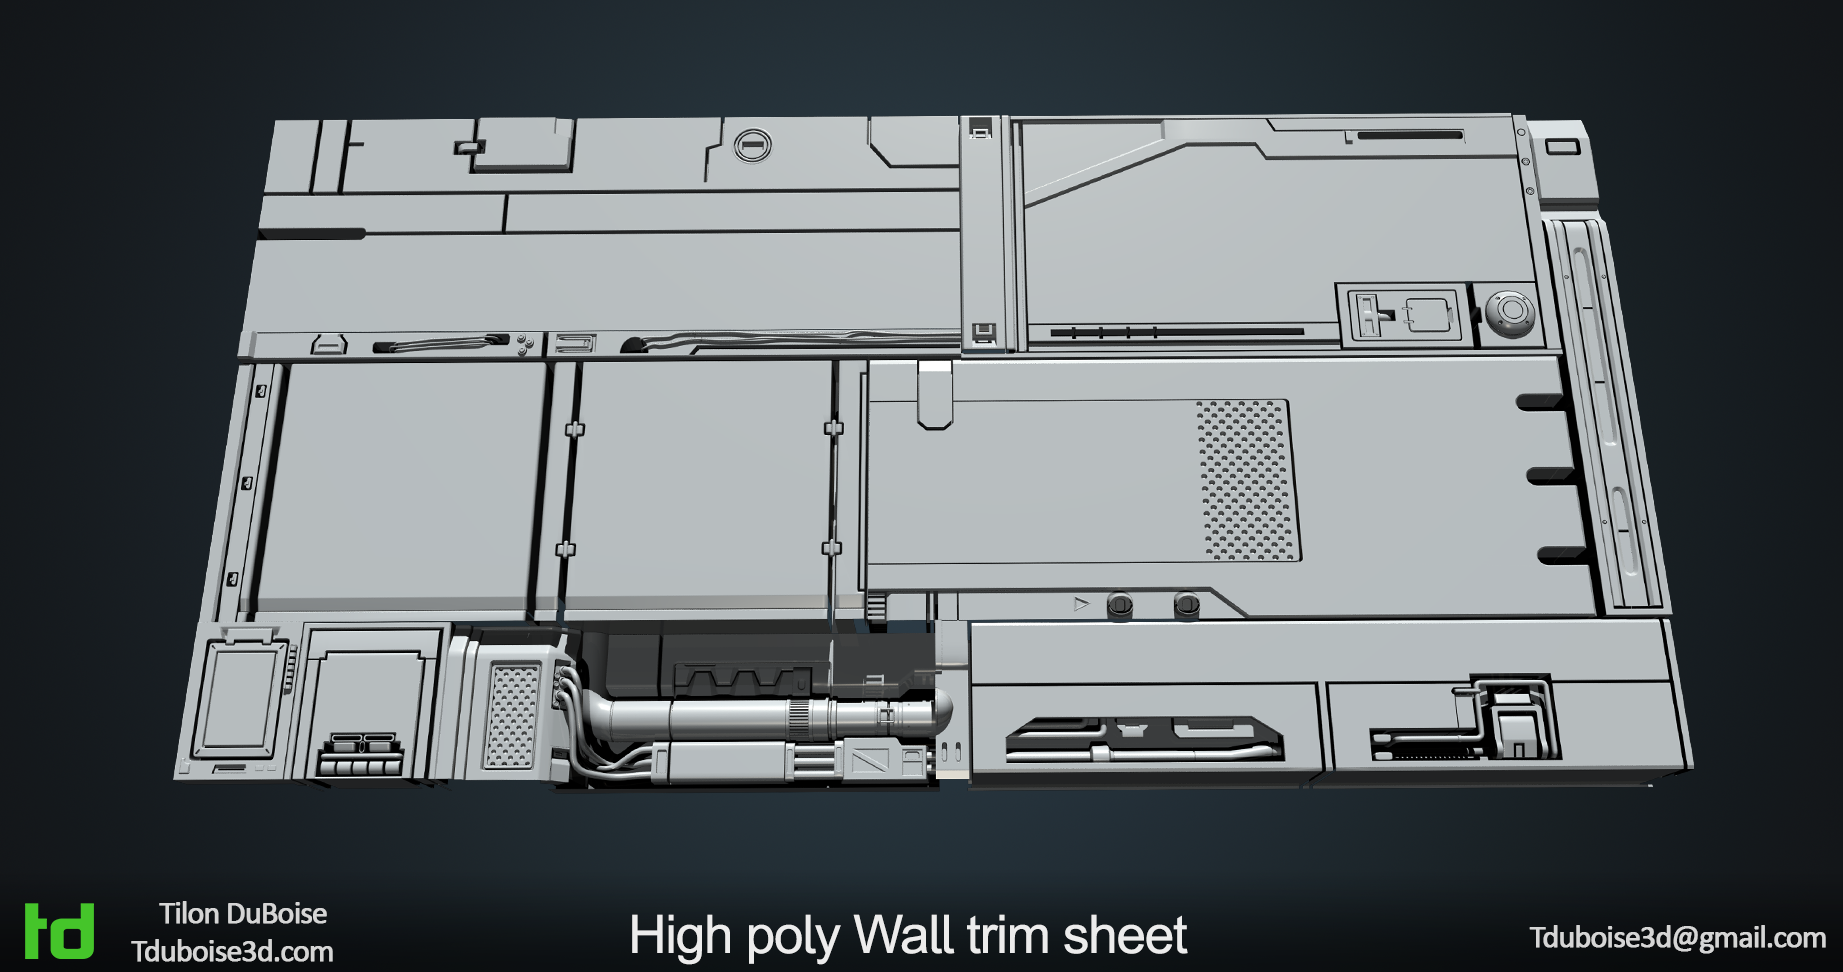 Halo-Engine-Bay-wall-trim-sheet-posters